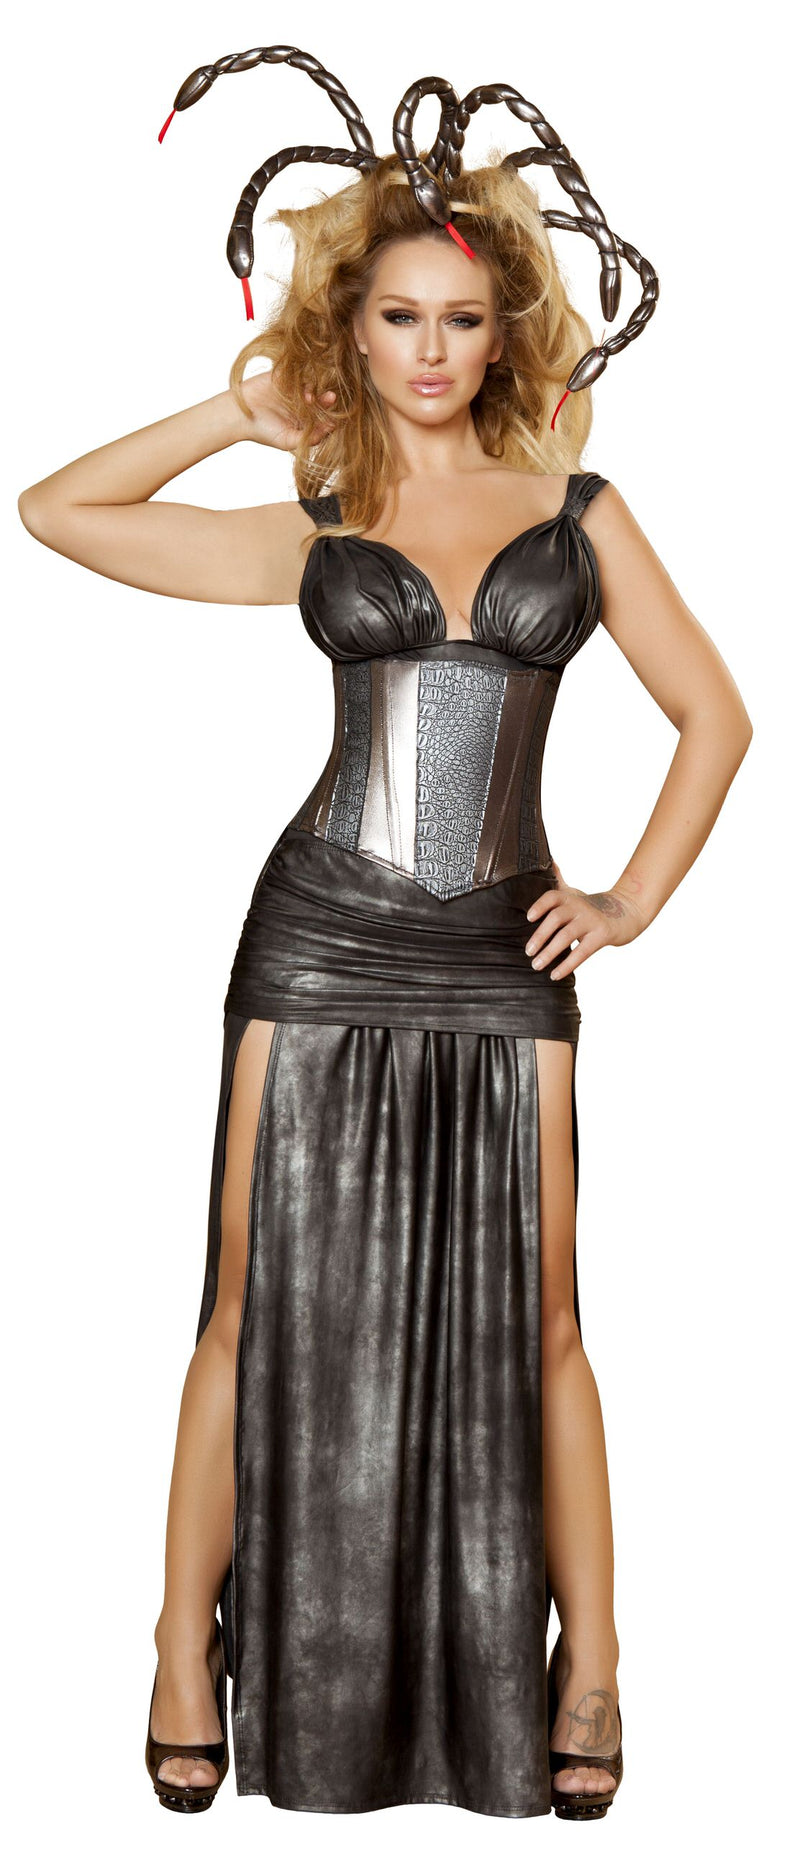 4-Piece-Sexy-Medusa-Greek-Goddess-Monster-Snake-Lady-Costume